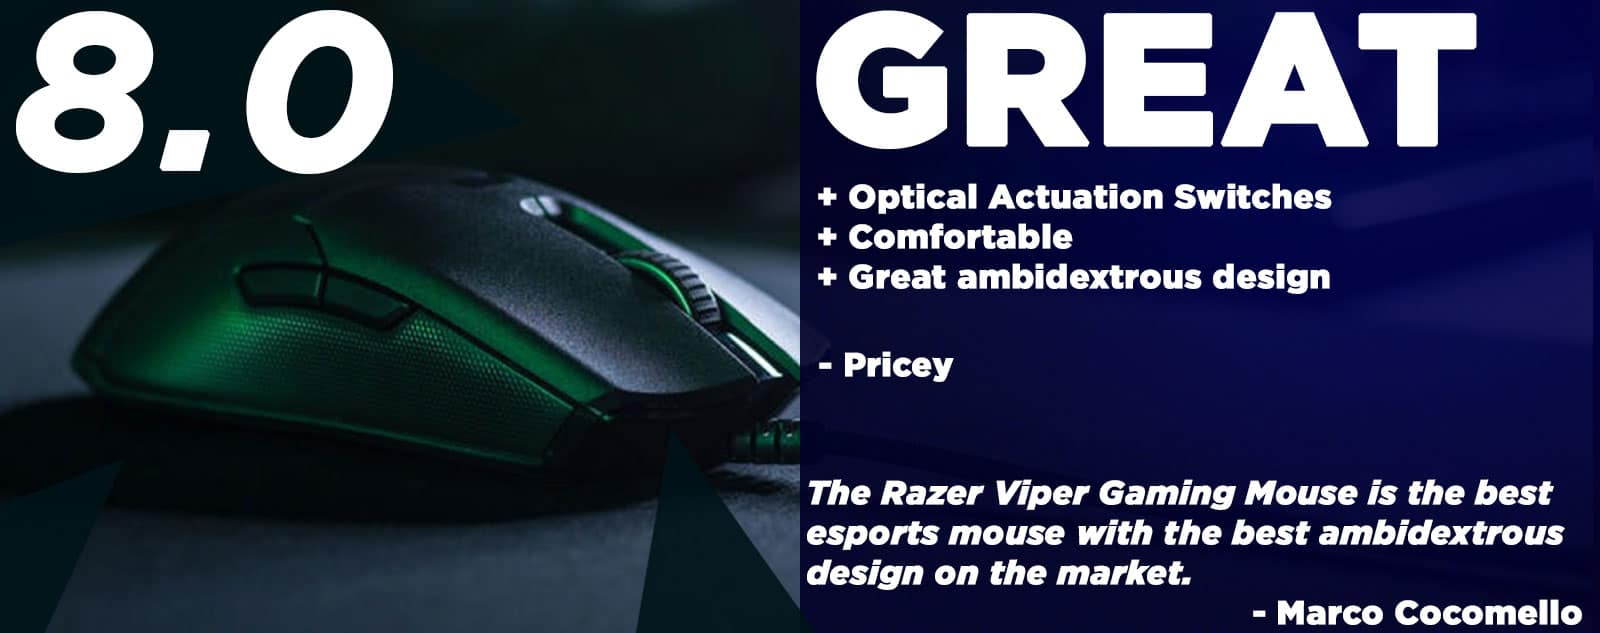 Razer Viper Gaming Mouse Review (1)